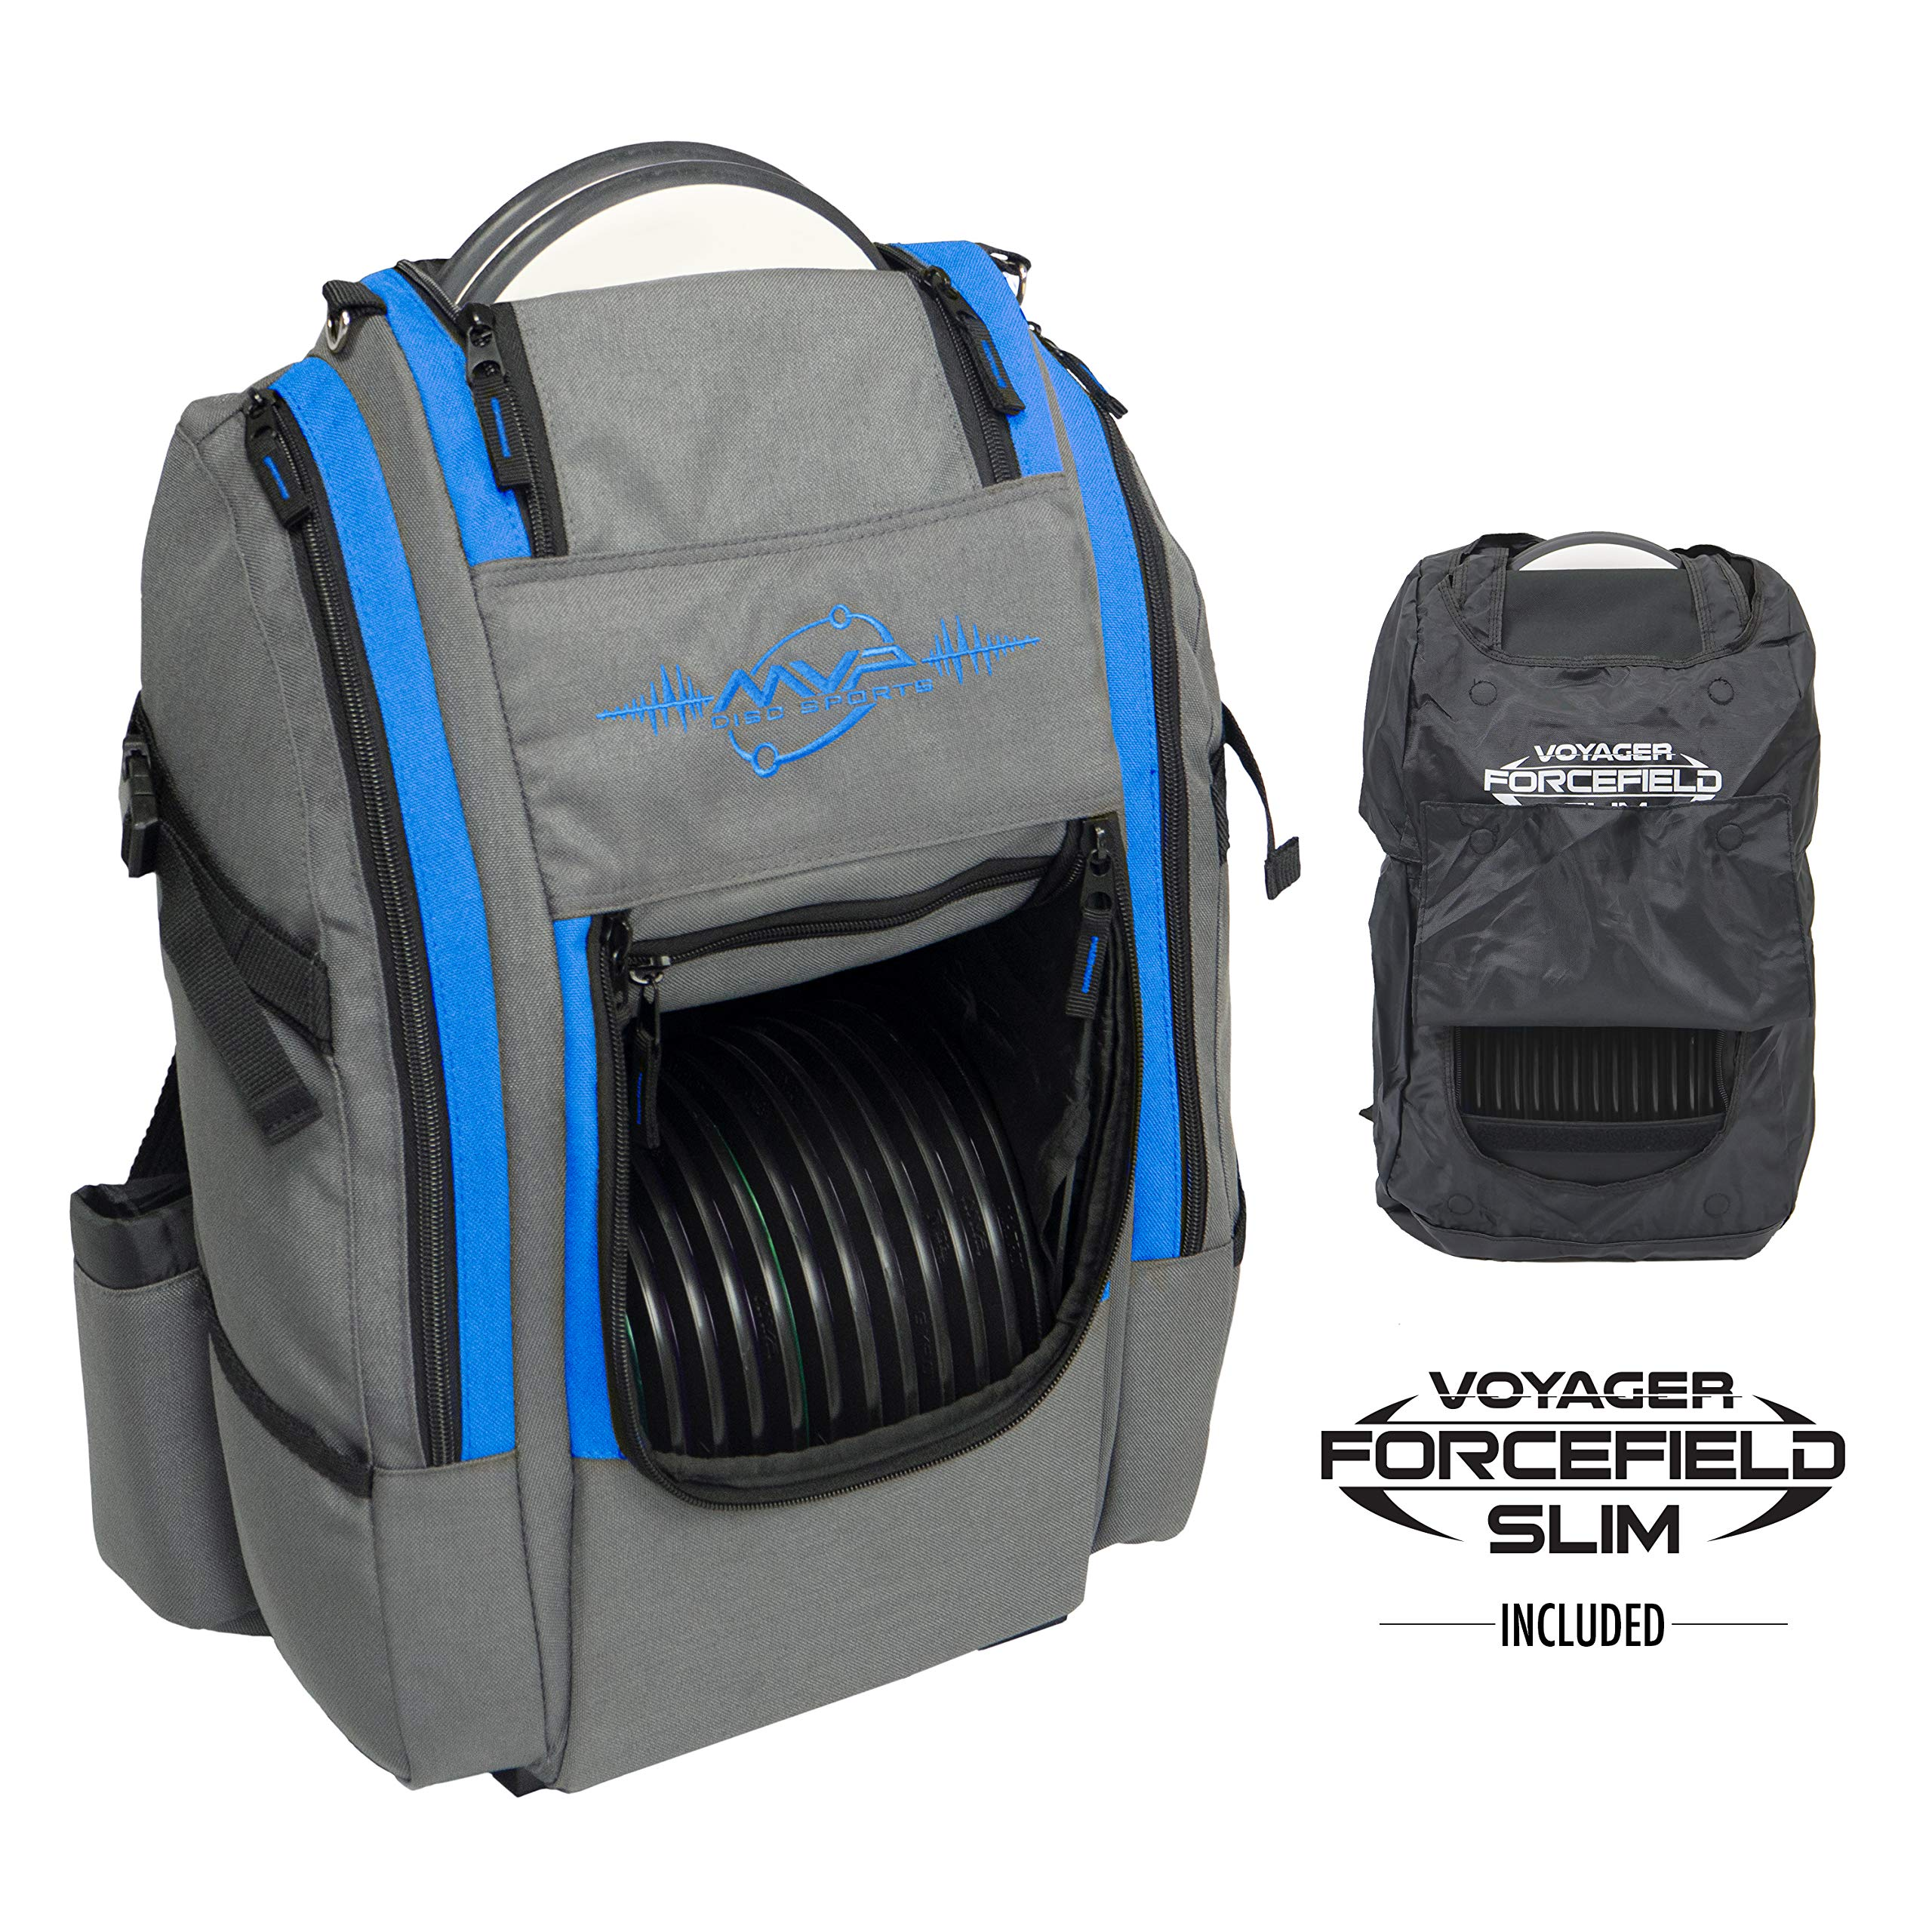 MVP Disc Sports Voyager Slim Bag (Gray/Royal) + Forcefield by MVP Disc Sports